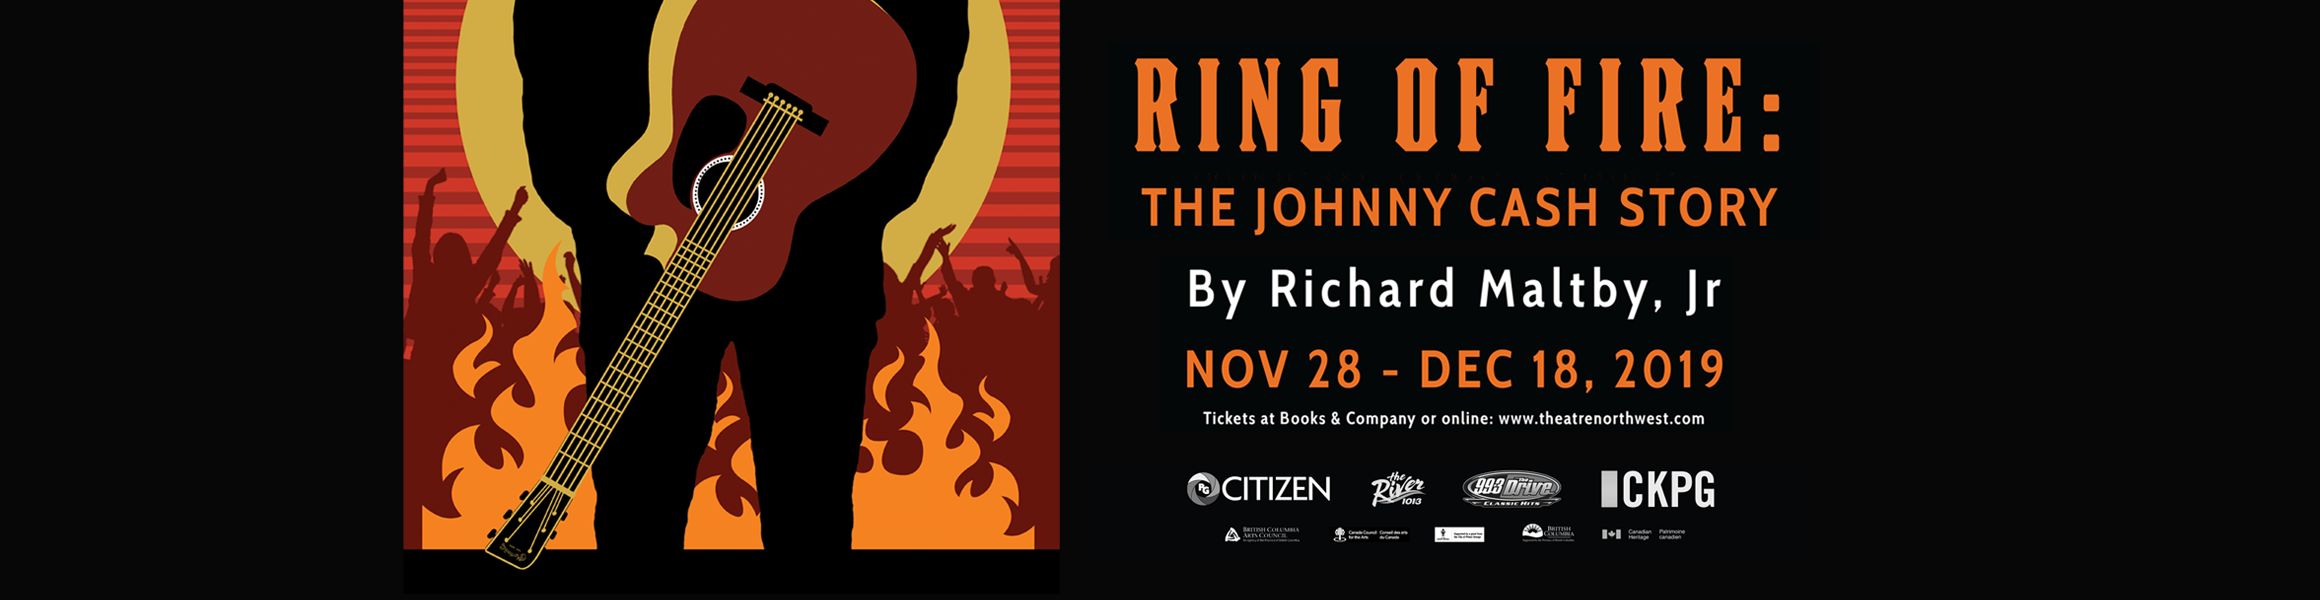 ring-fire-web-banner